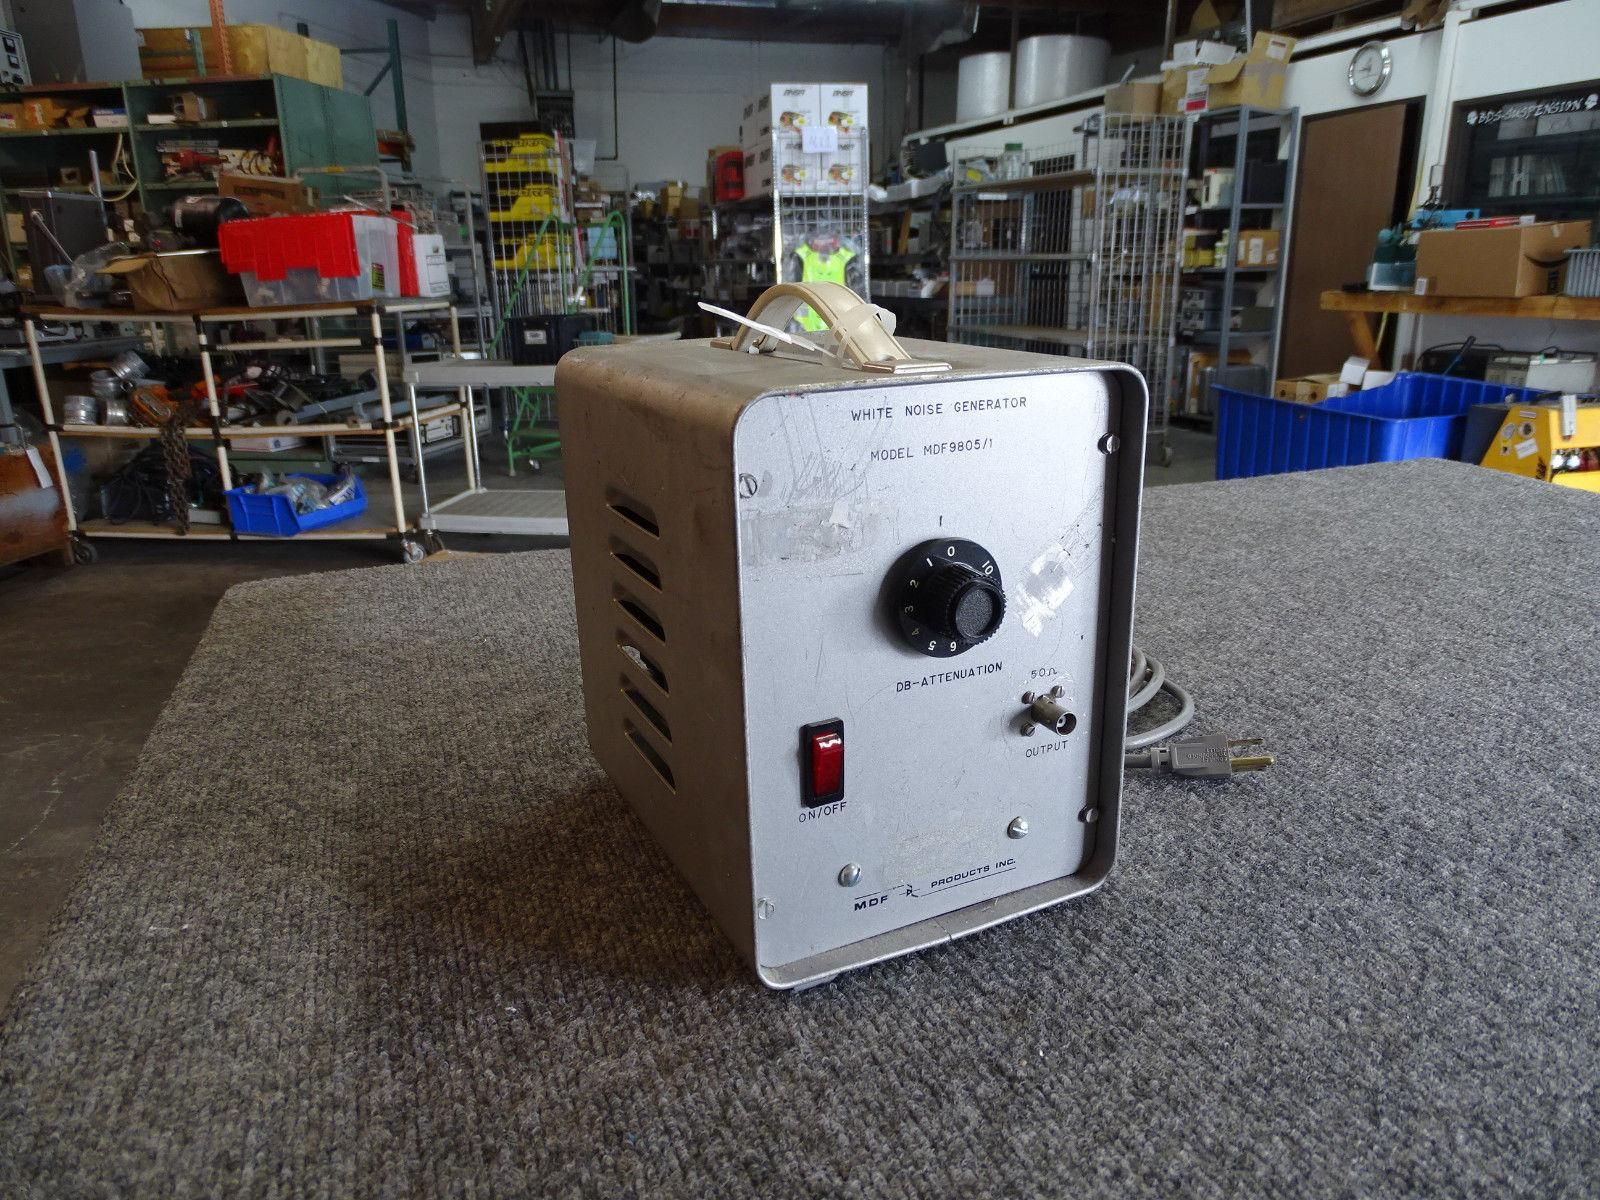 MDF Products MDF9805/1 White Noise Generator